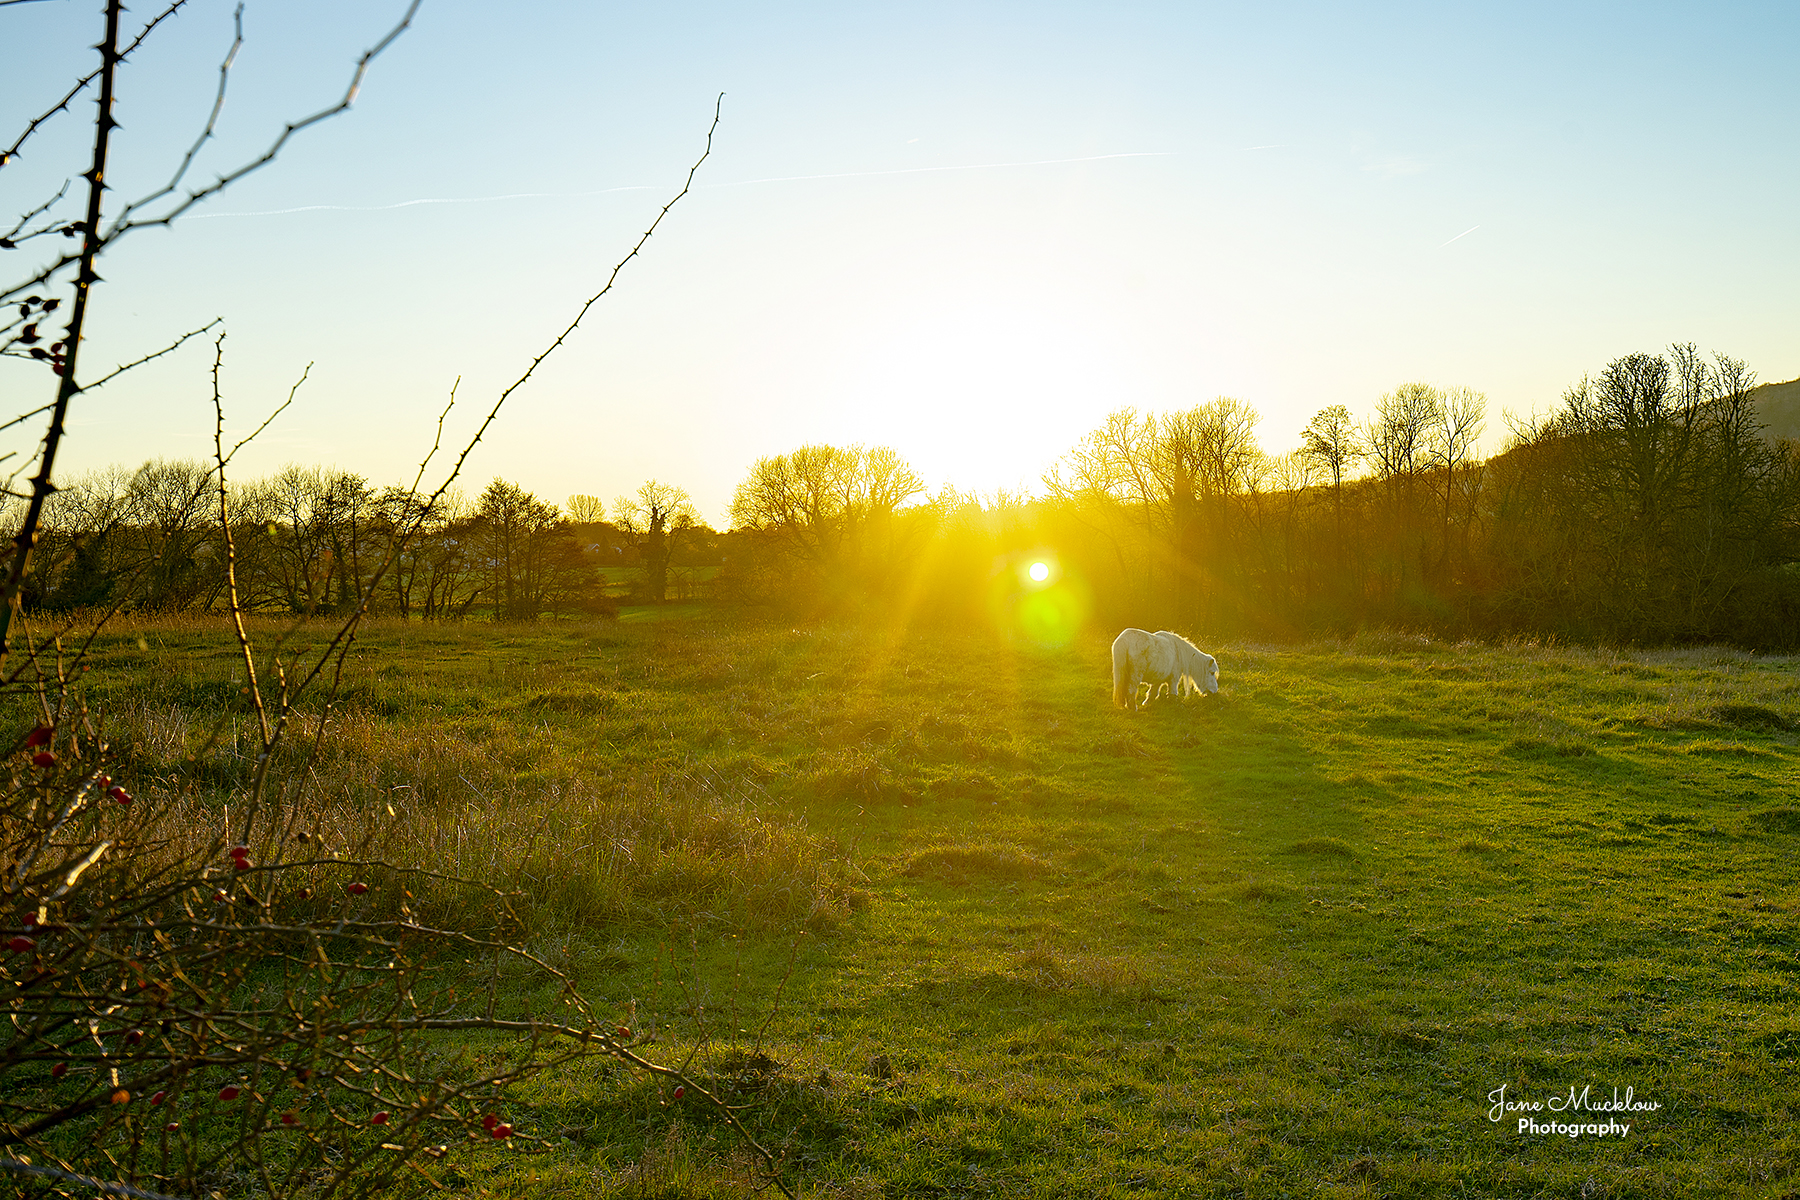 Photo of the sunset across the pony field near Otford, by Jane Mucklow